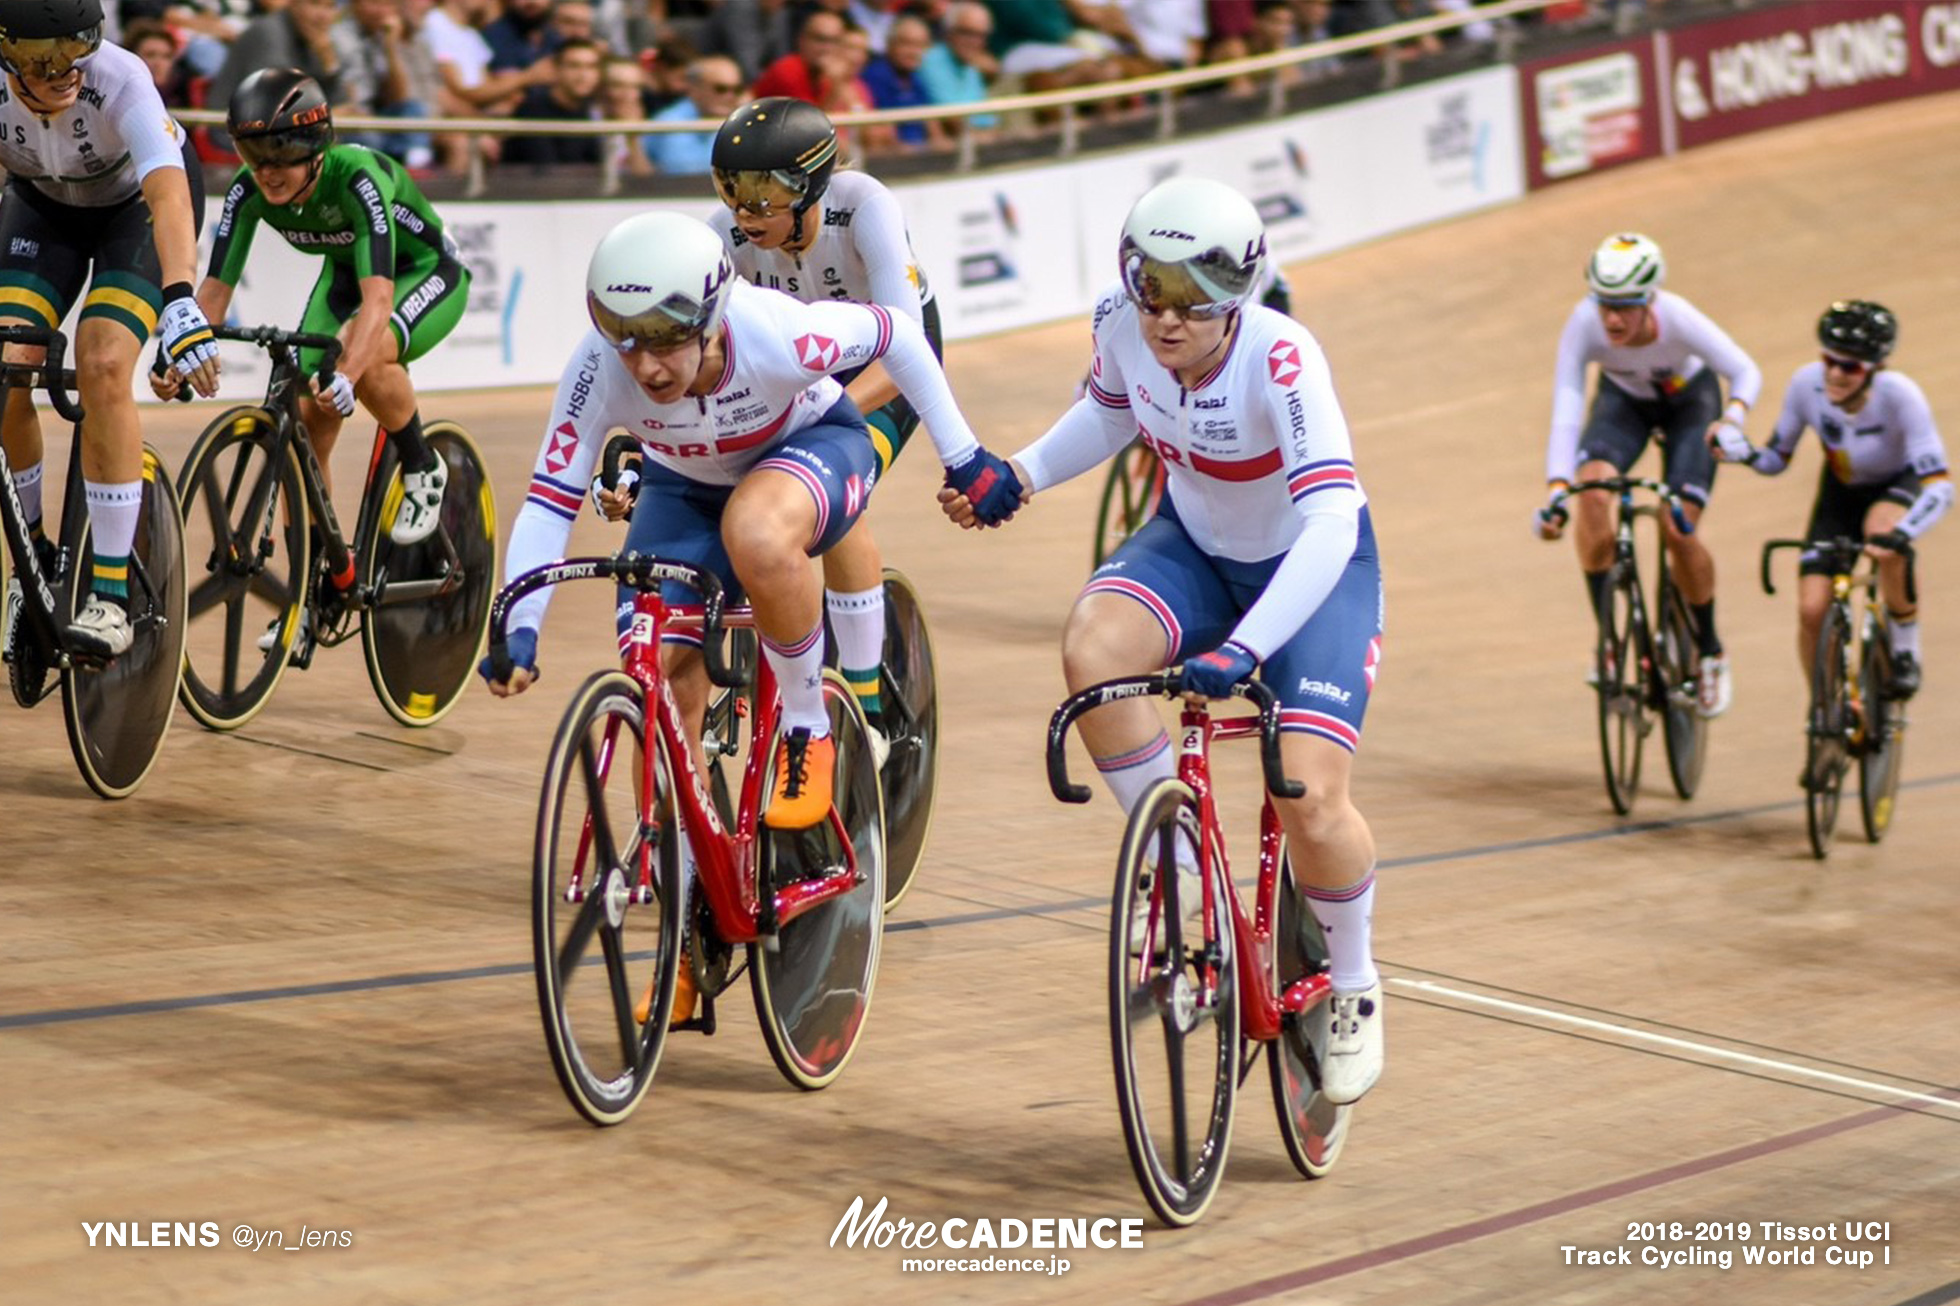 2018-2019 TRACK CYCLING WORLD CUP I Women's Madison